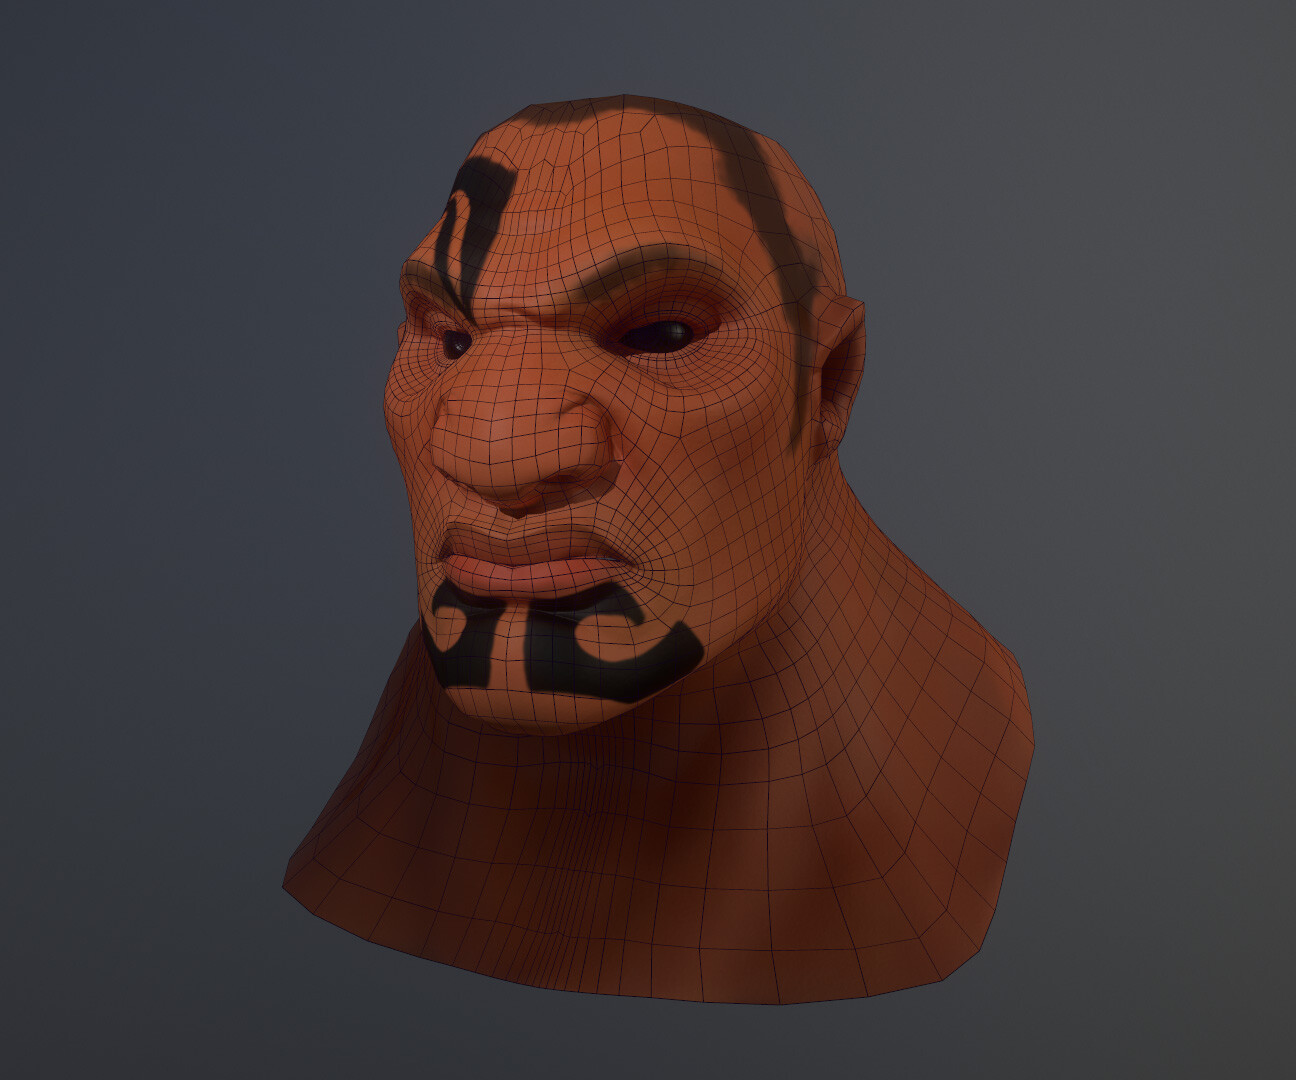 8K bust of Rau in Marmoset